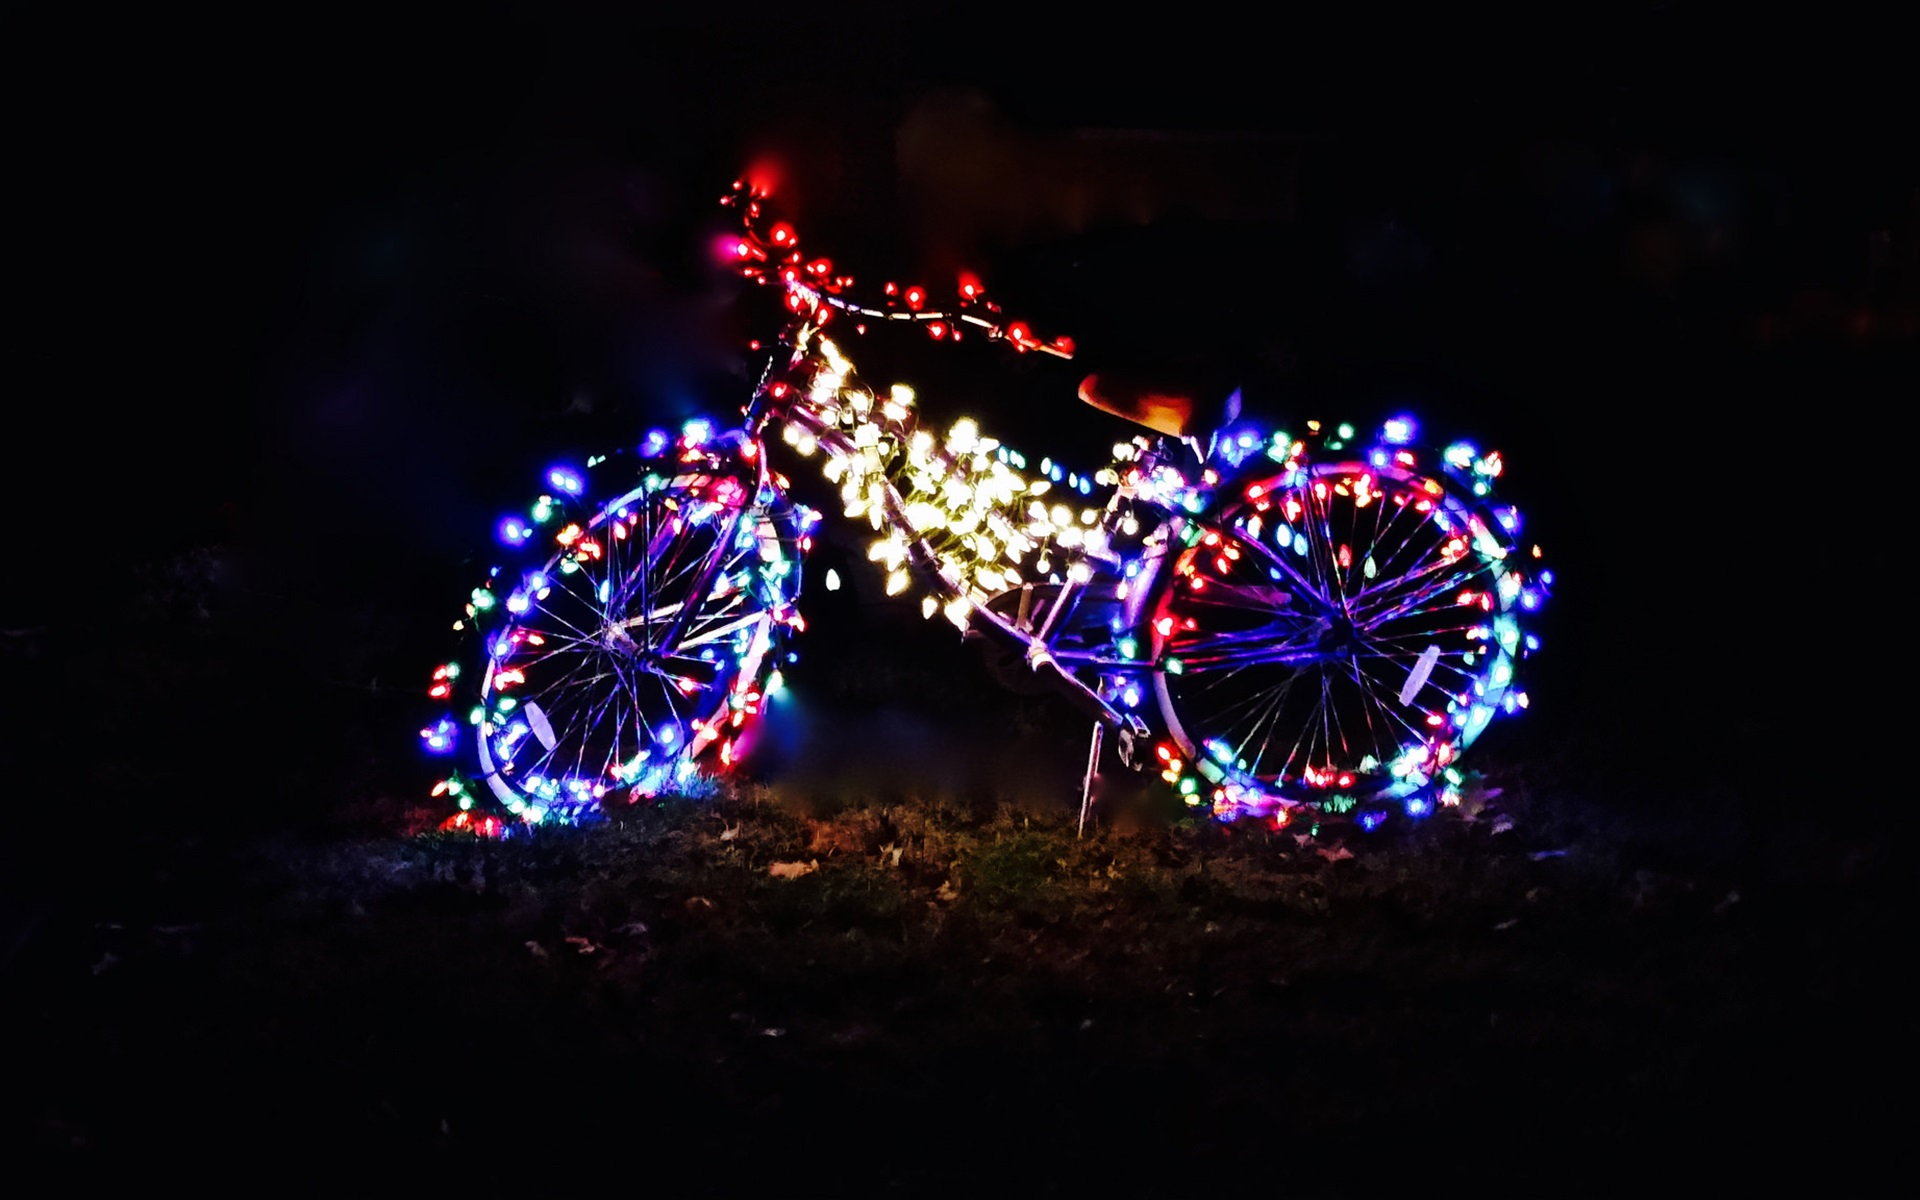 Simple Wallpaper Night Colorful - Bicycle-at-night-colorful-holiday-lights_1920x1200  HD.jpg